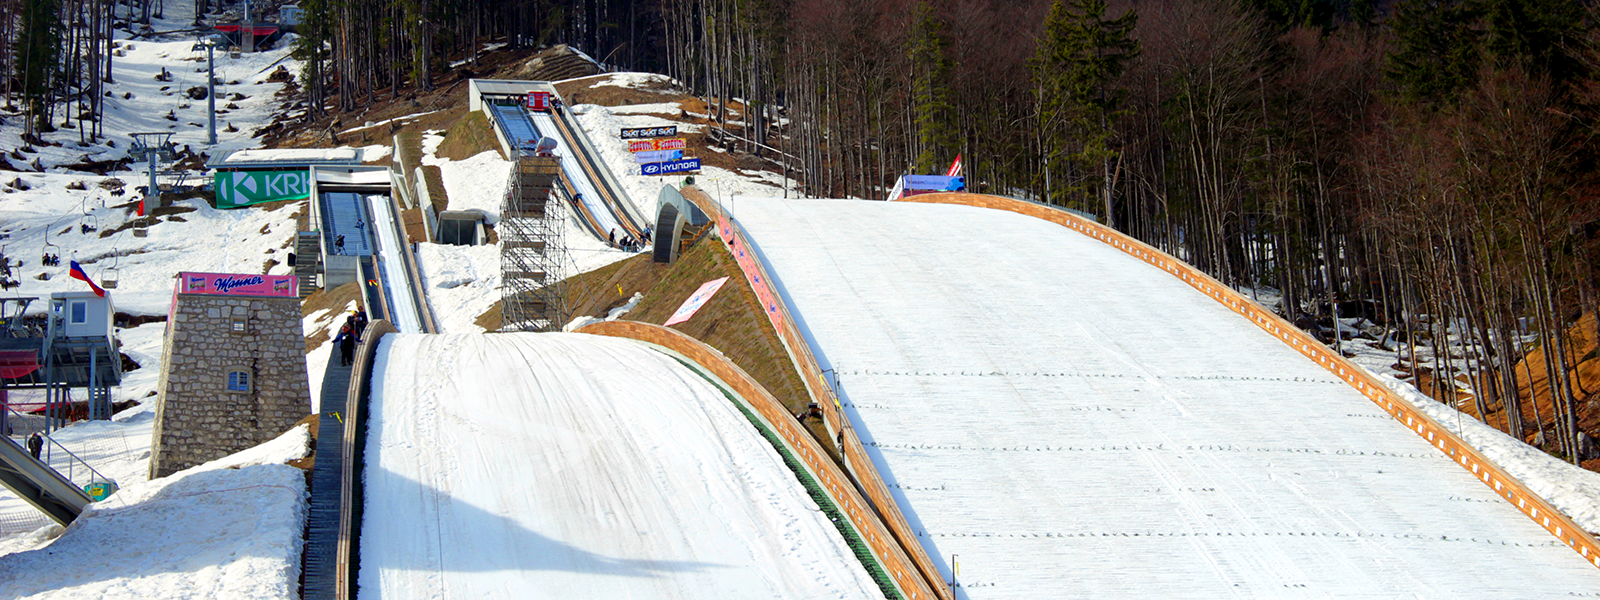 http://nd-ratece-planica.si/wp-content/uploads/2016/12/skakalnice.png